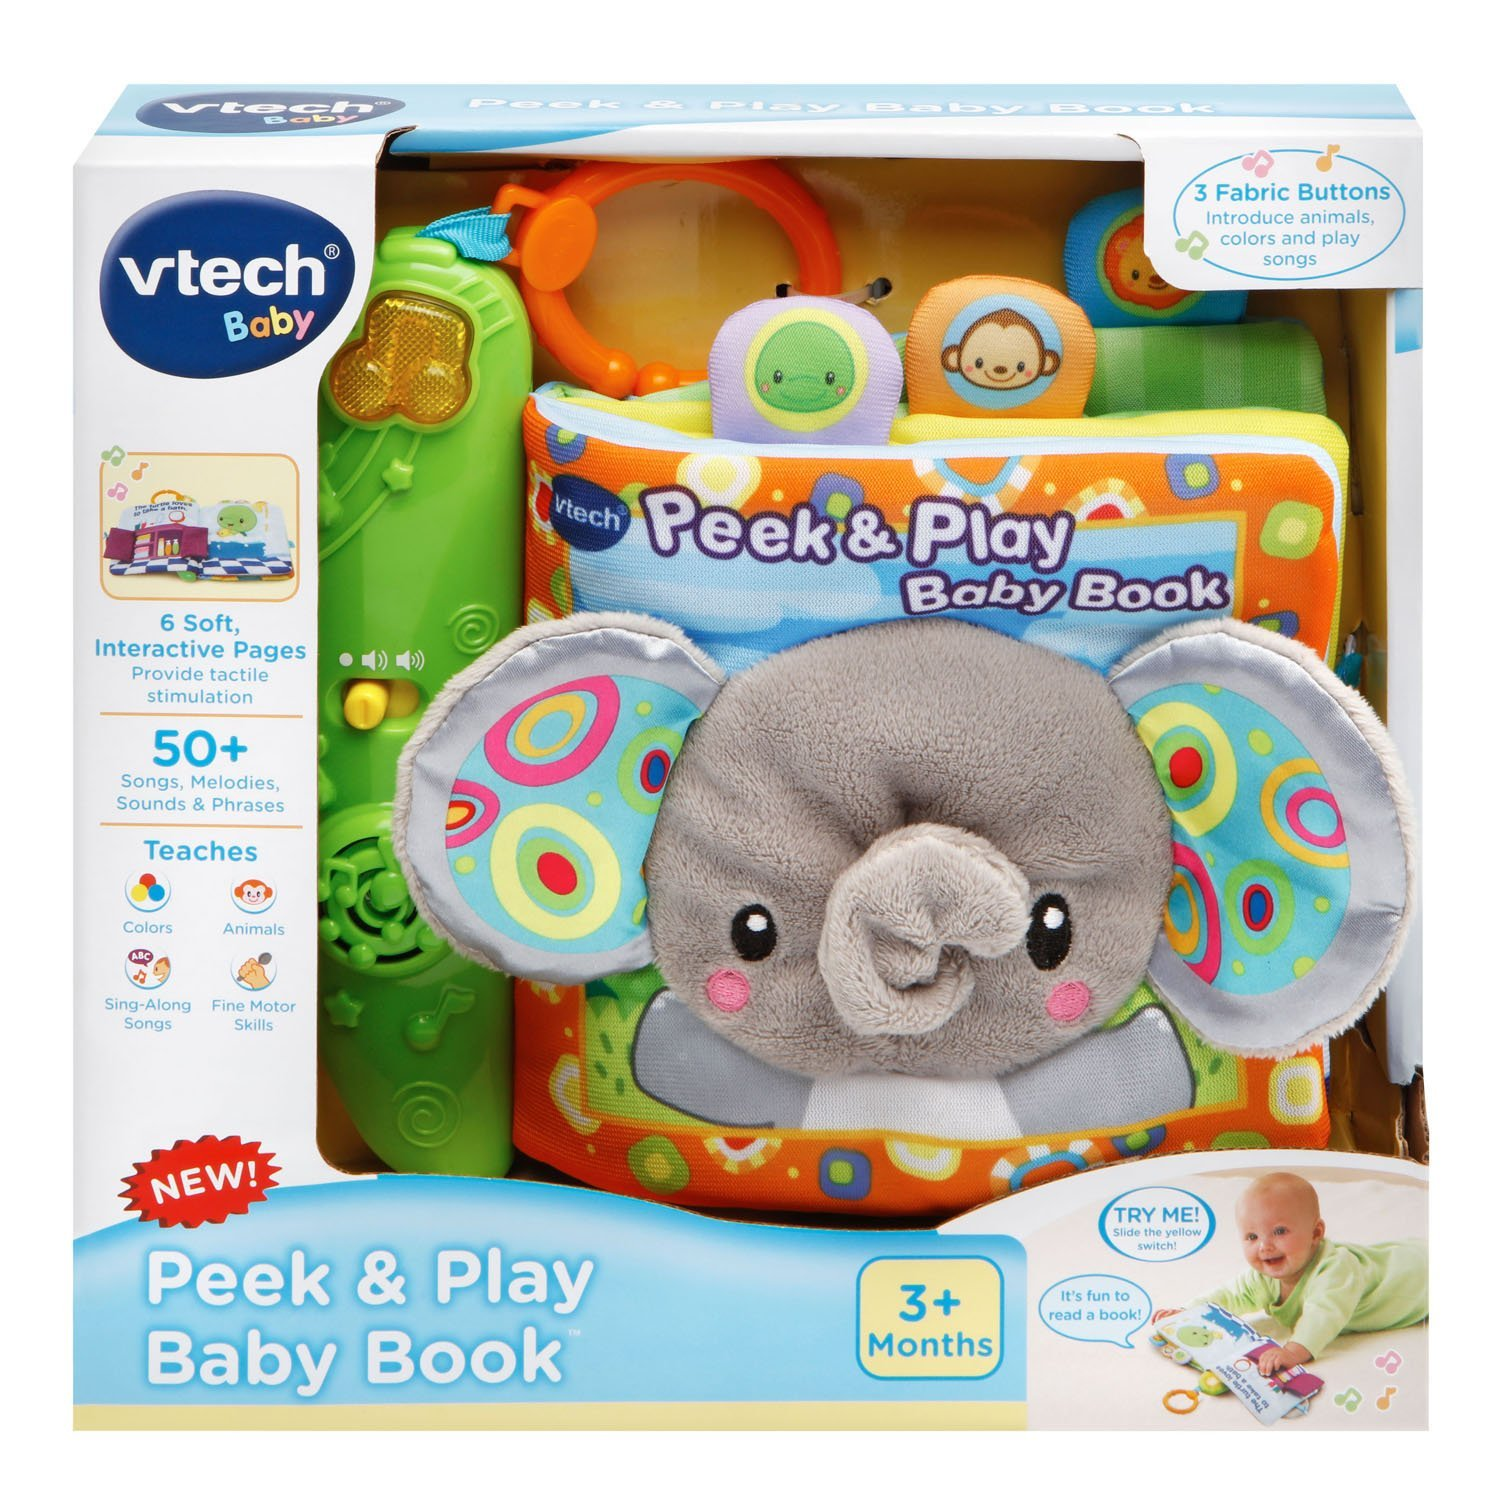 amazon com vtech baby peek and play baby book toys u0026 games